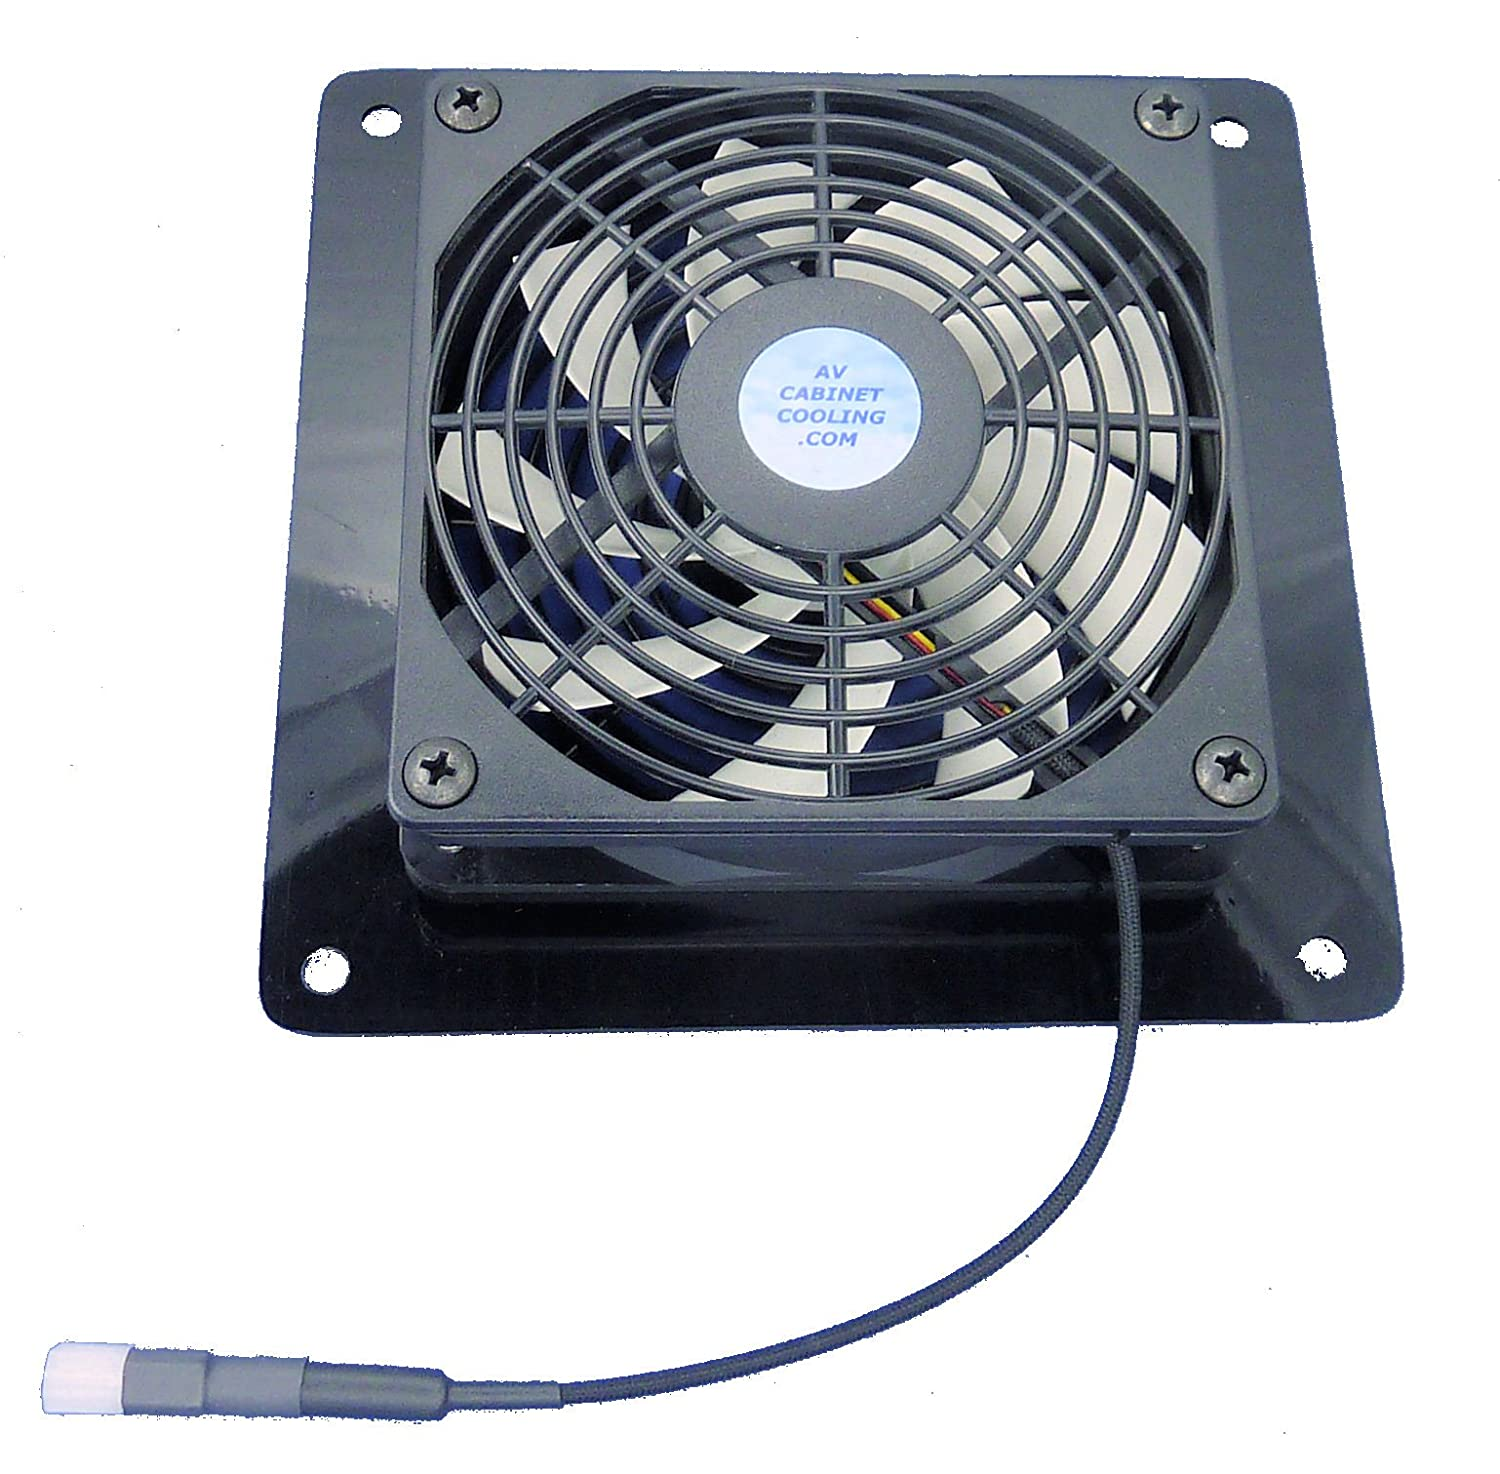 Amazon.com: AV Cabinet 12 Volt Trigger Controlled Cooling Fan ...